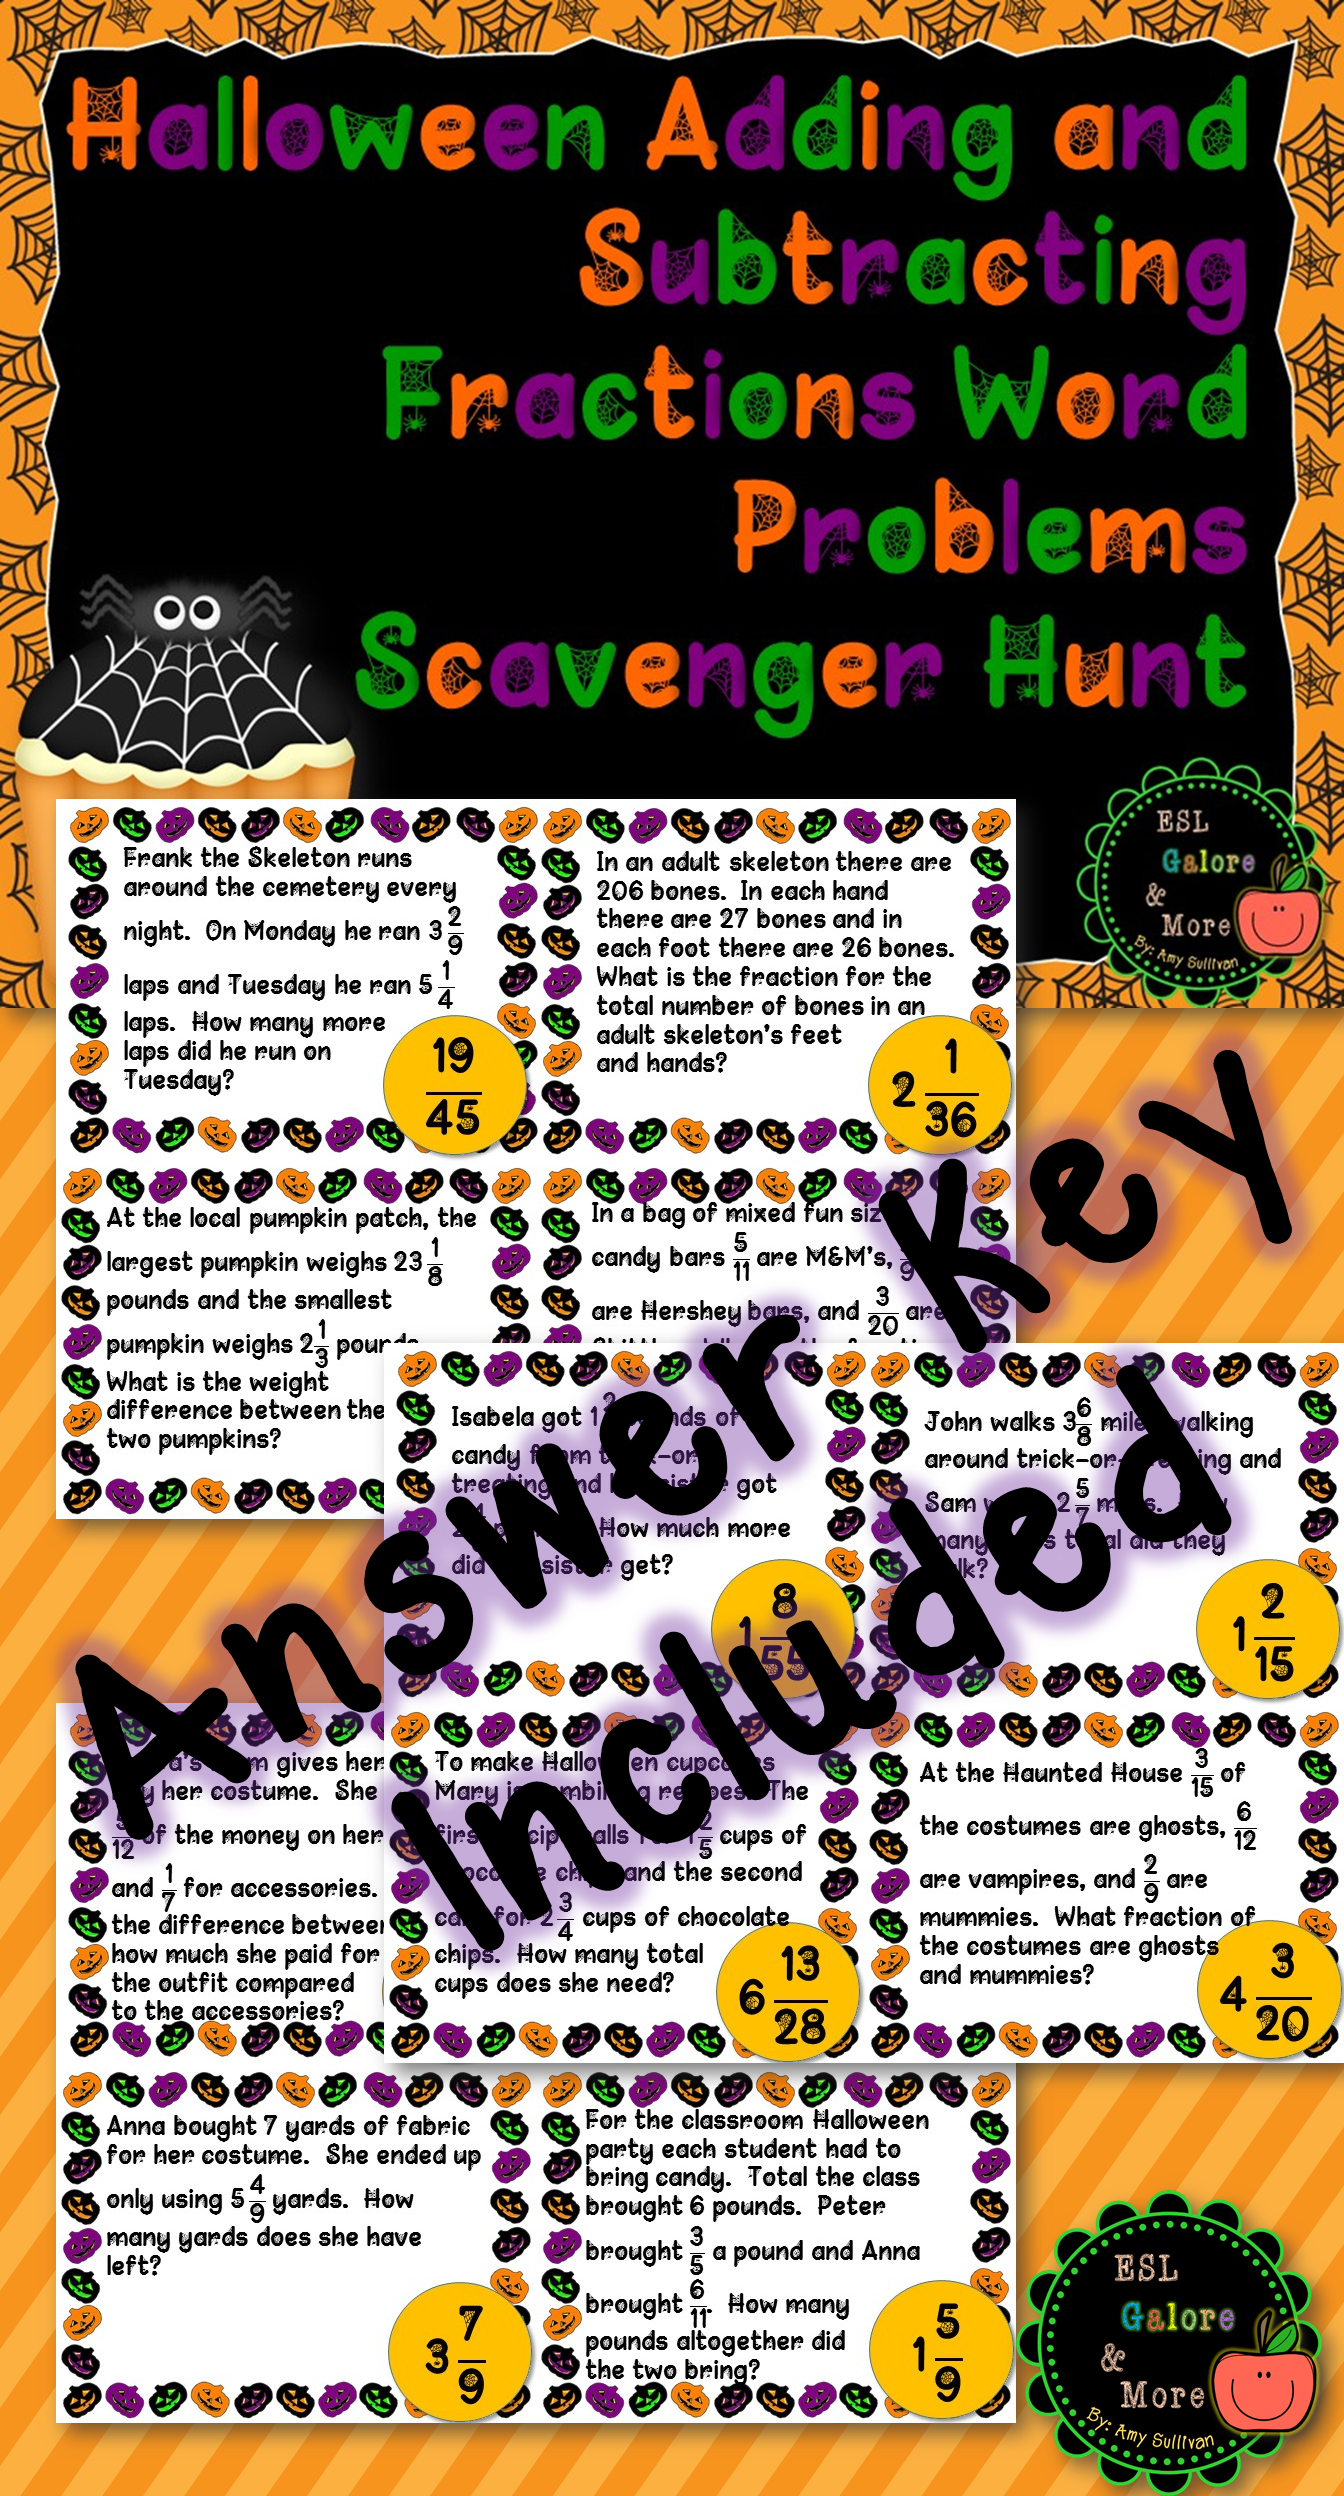 Halloween Adding And Subtracting Fractions Word Problems Adding And Subtracting Fractions Subtracting Fractions Adding And Subtracting [ 2496 x 1344 Pixel ]